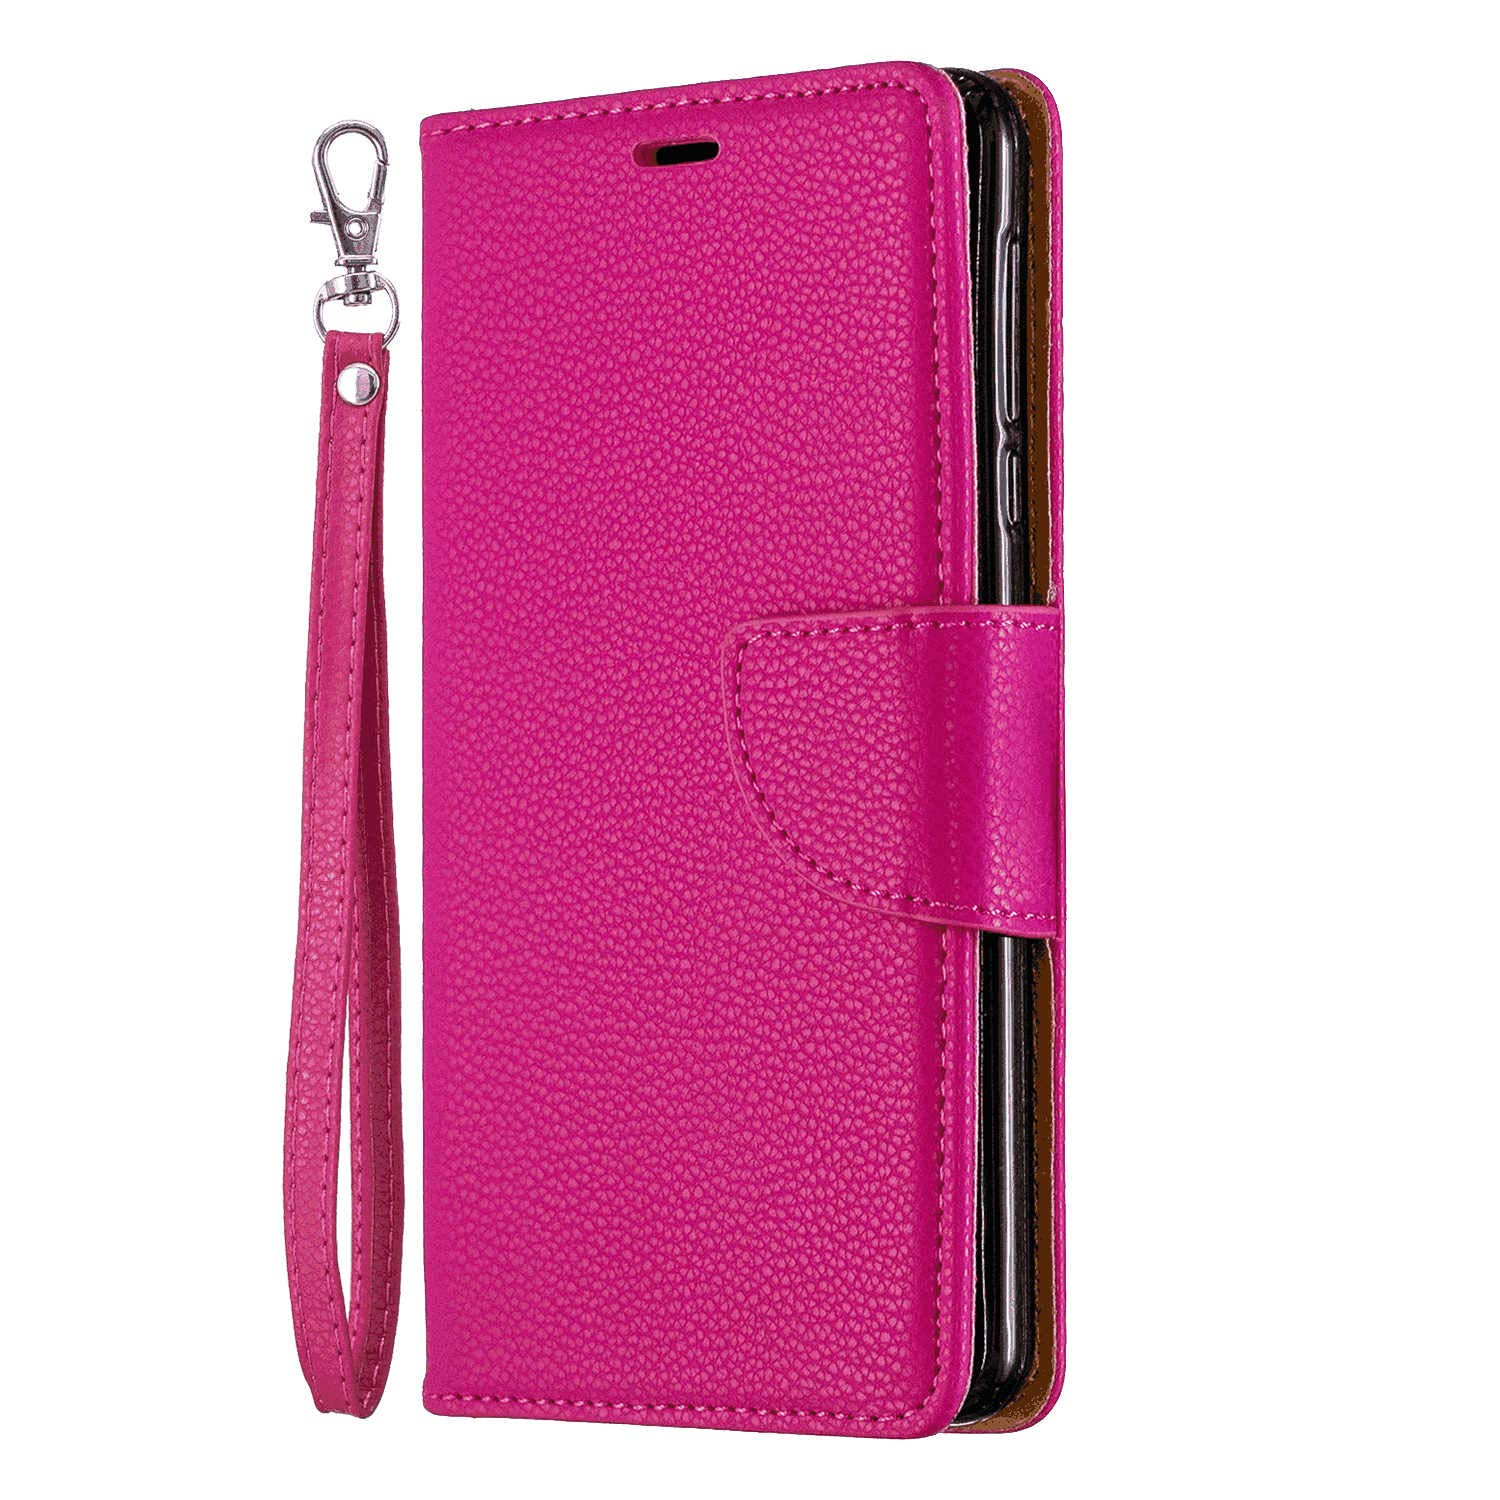 iPhone XR Flip Case Cover for iPhone XR Leather Kickstand Mobile Phone Cover Extra-Shockproof Business Card Holders with Free Waterproof-Bag Fashion